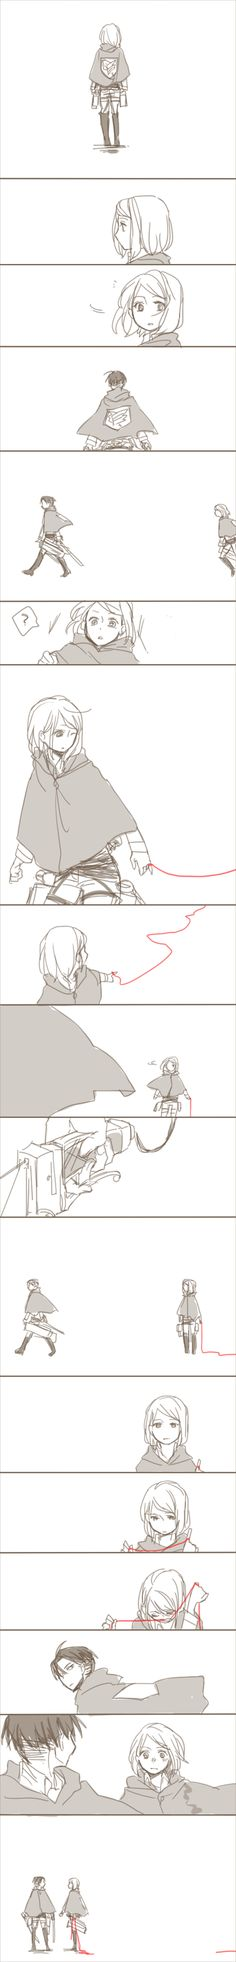 Pure perfection. Her red string was going to someone else, but she cut it to be with Levi. Omg I'm gonna die this is so amazing seriously someone help